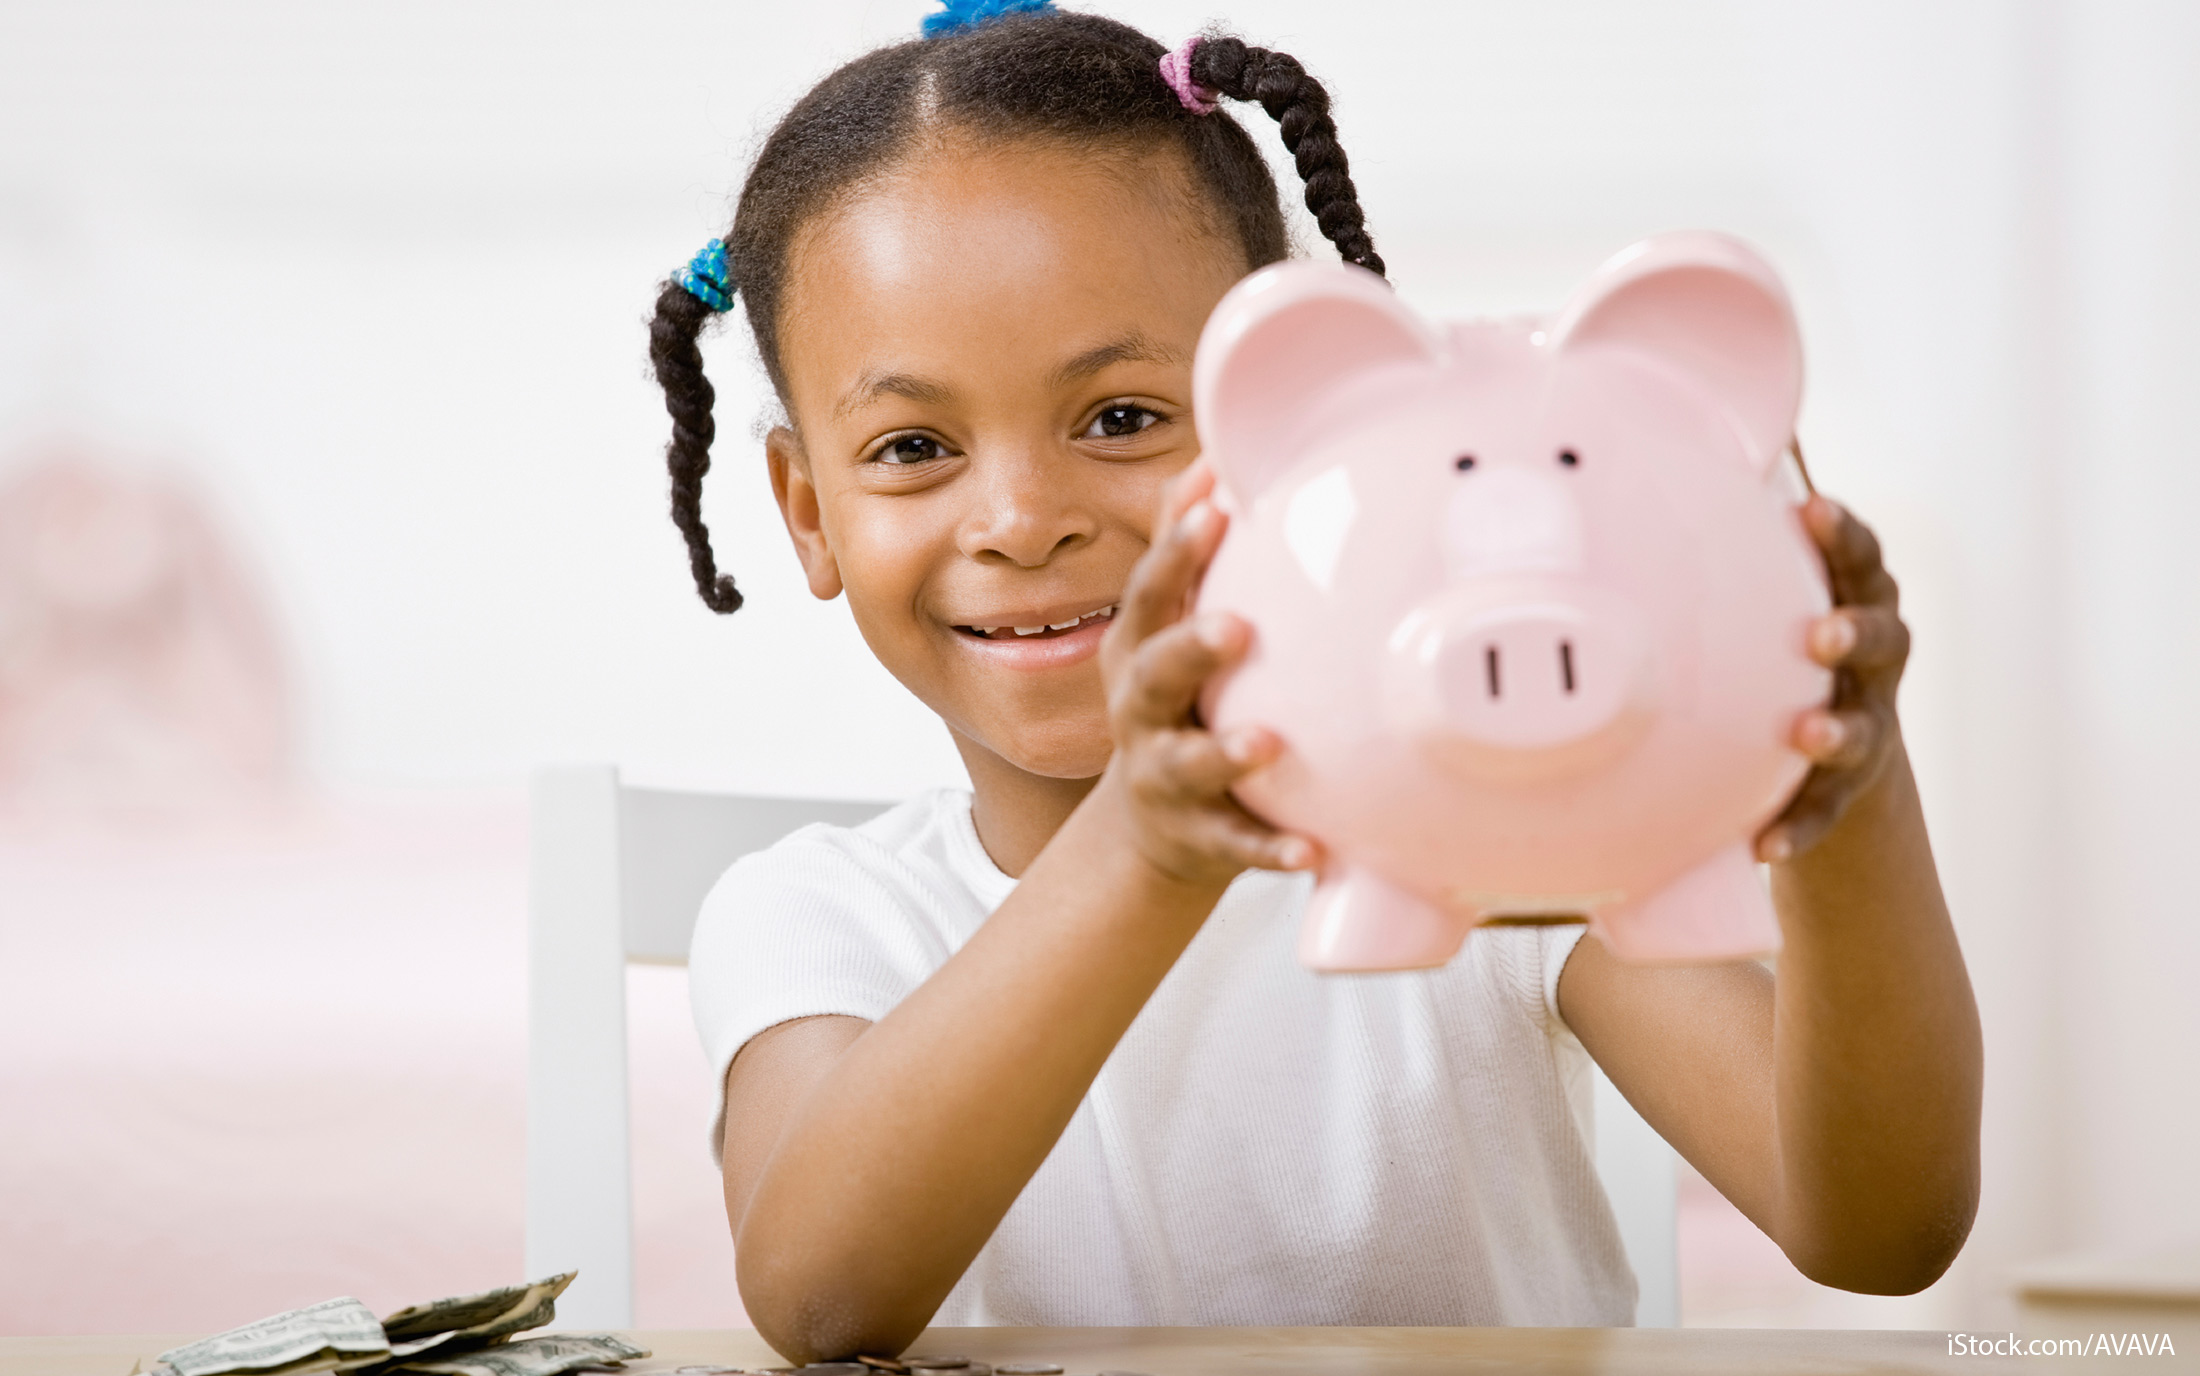 7 Things To Teach Your Kids About Credit And Money